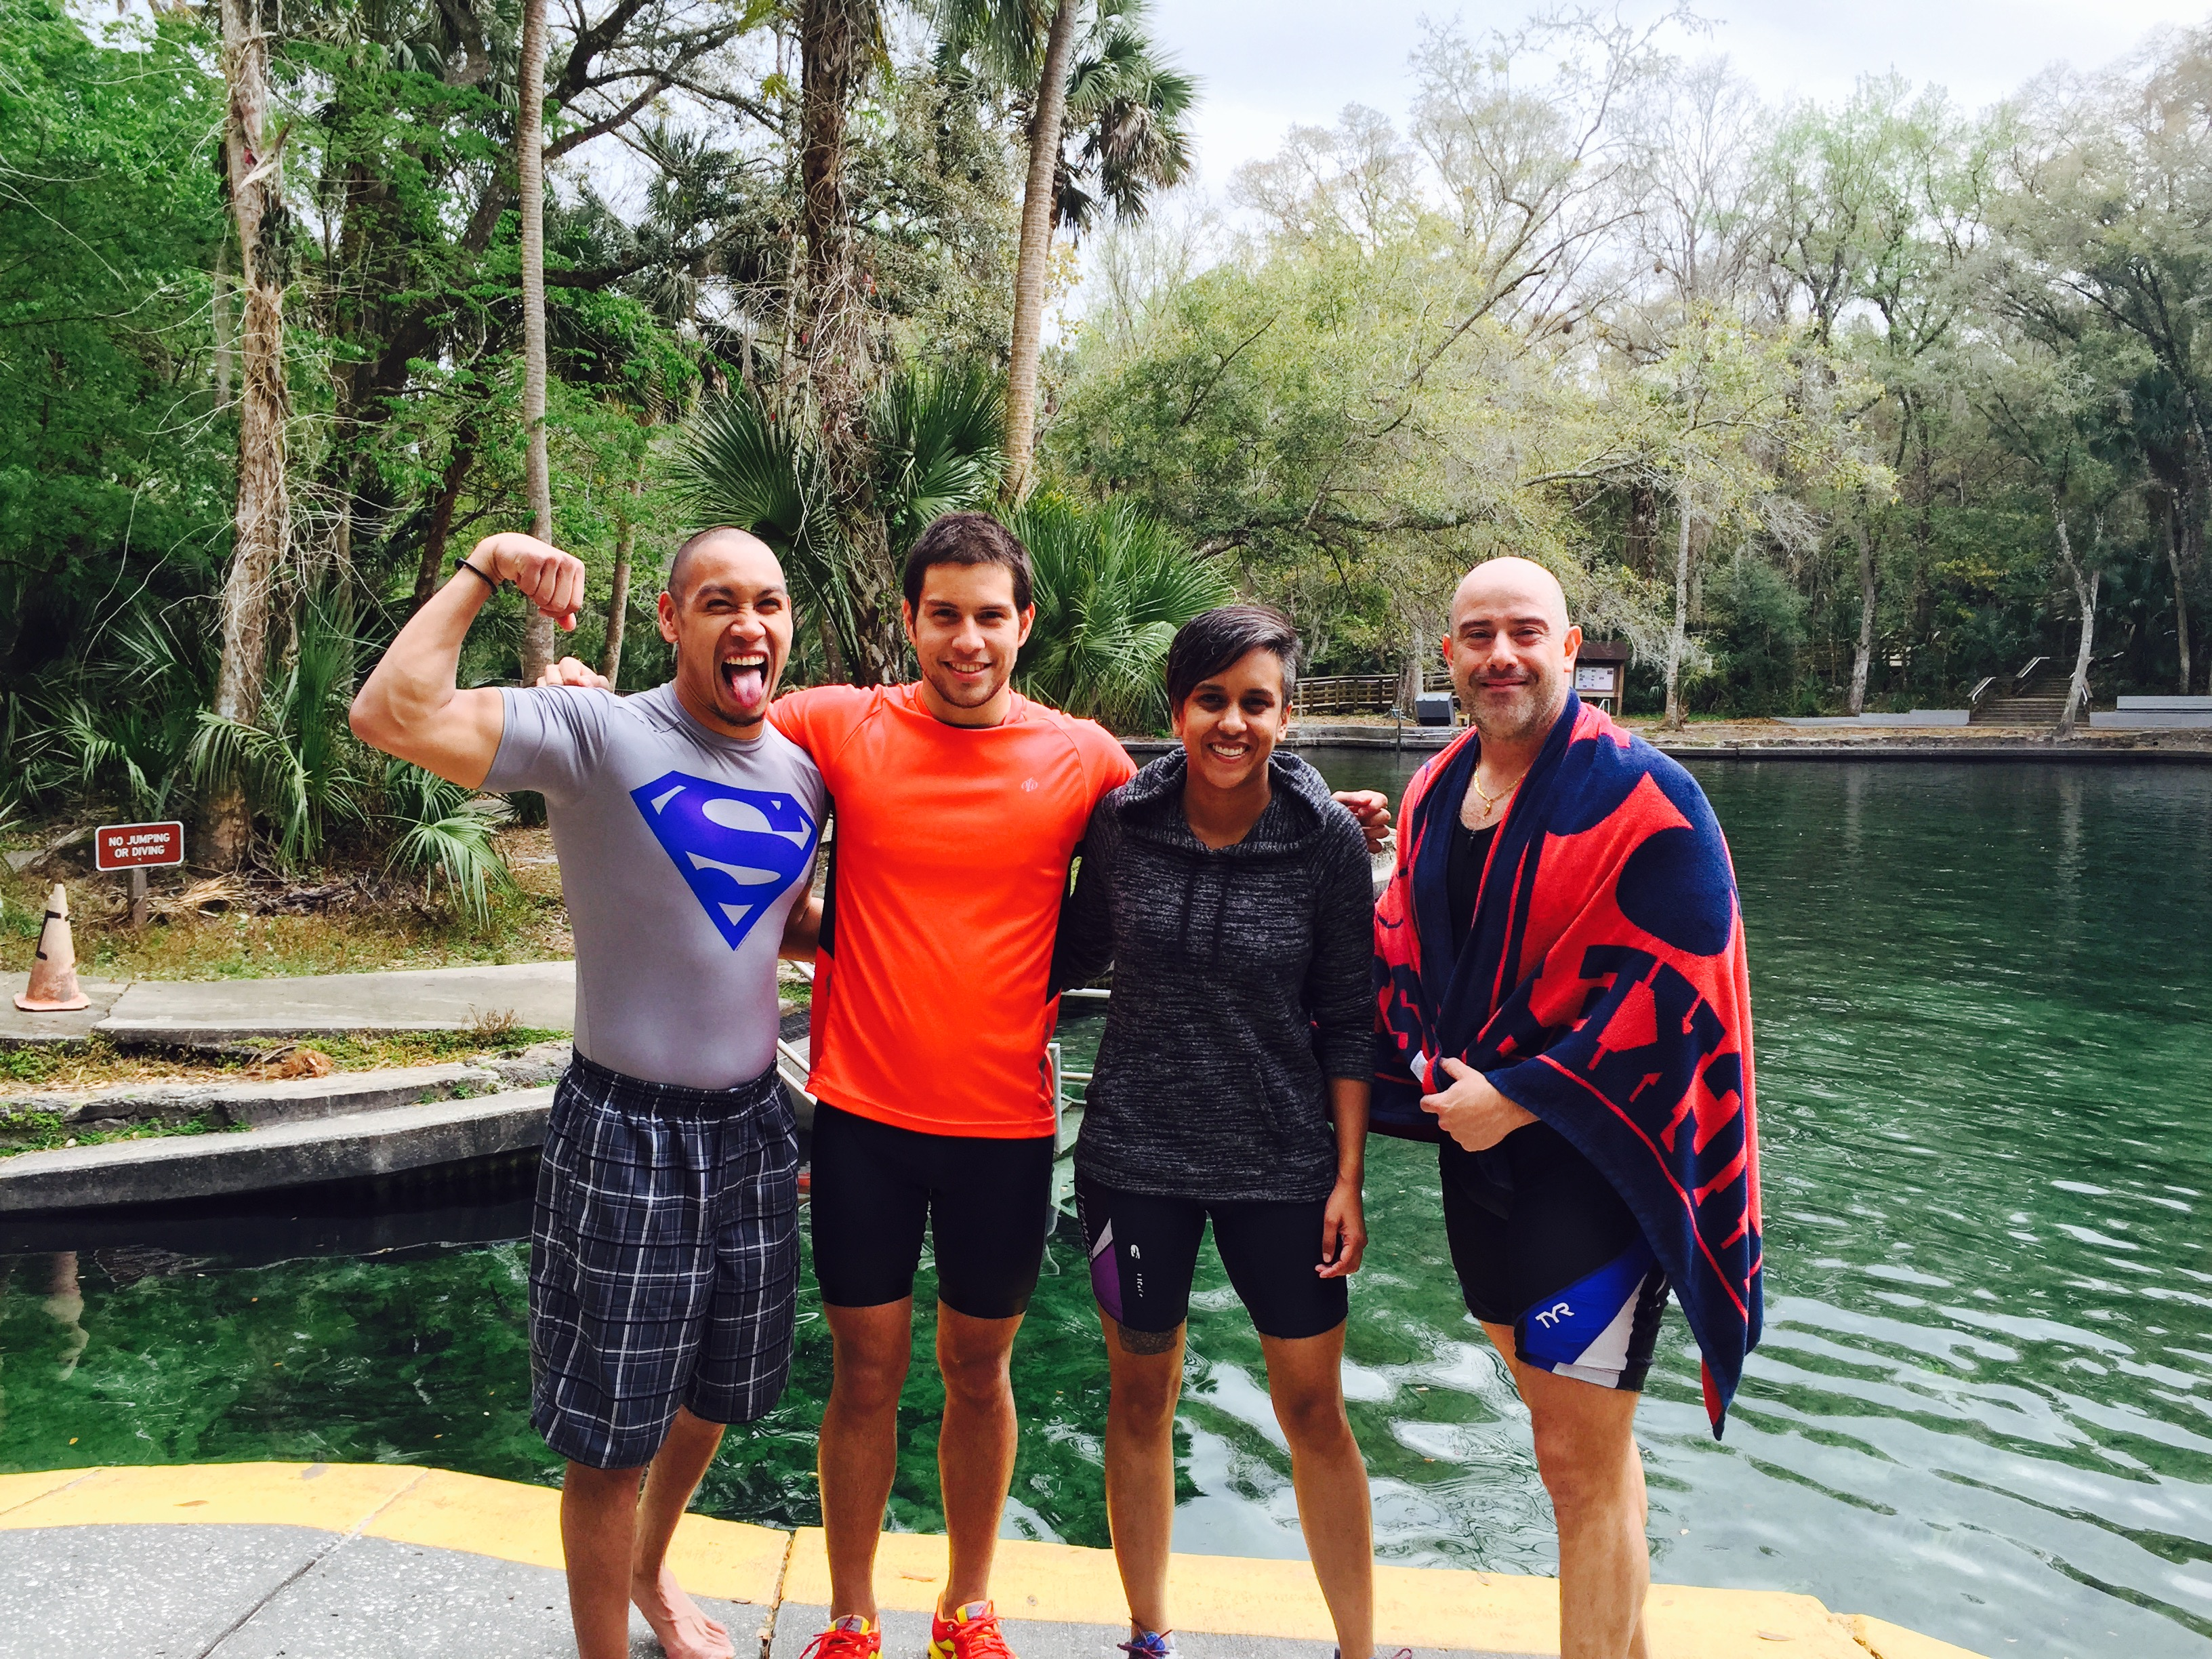 KST group swim at Wekiva